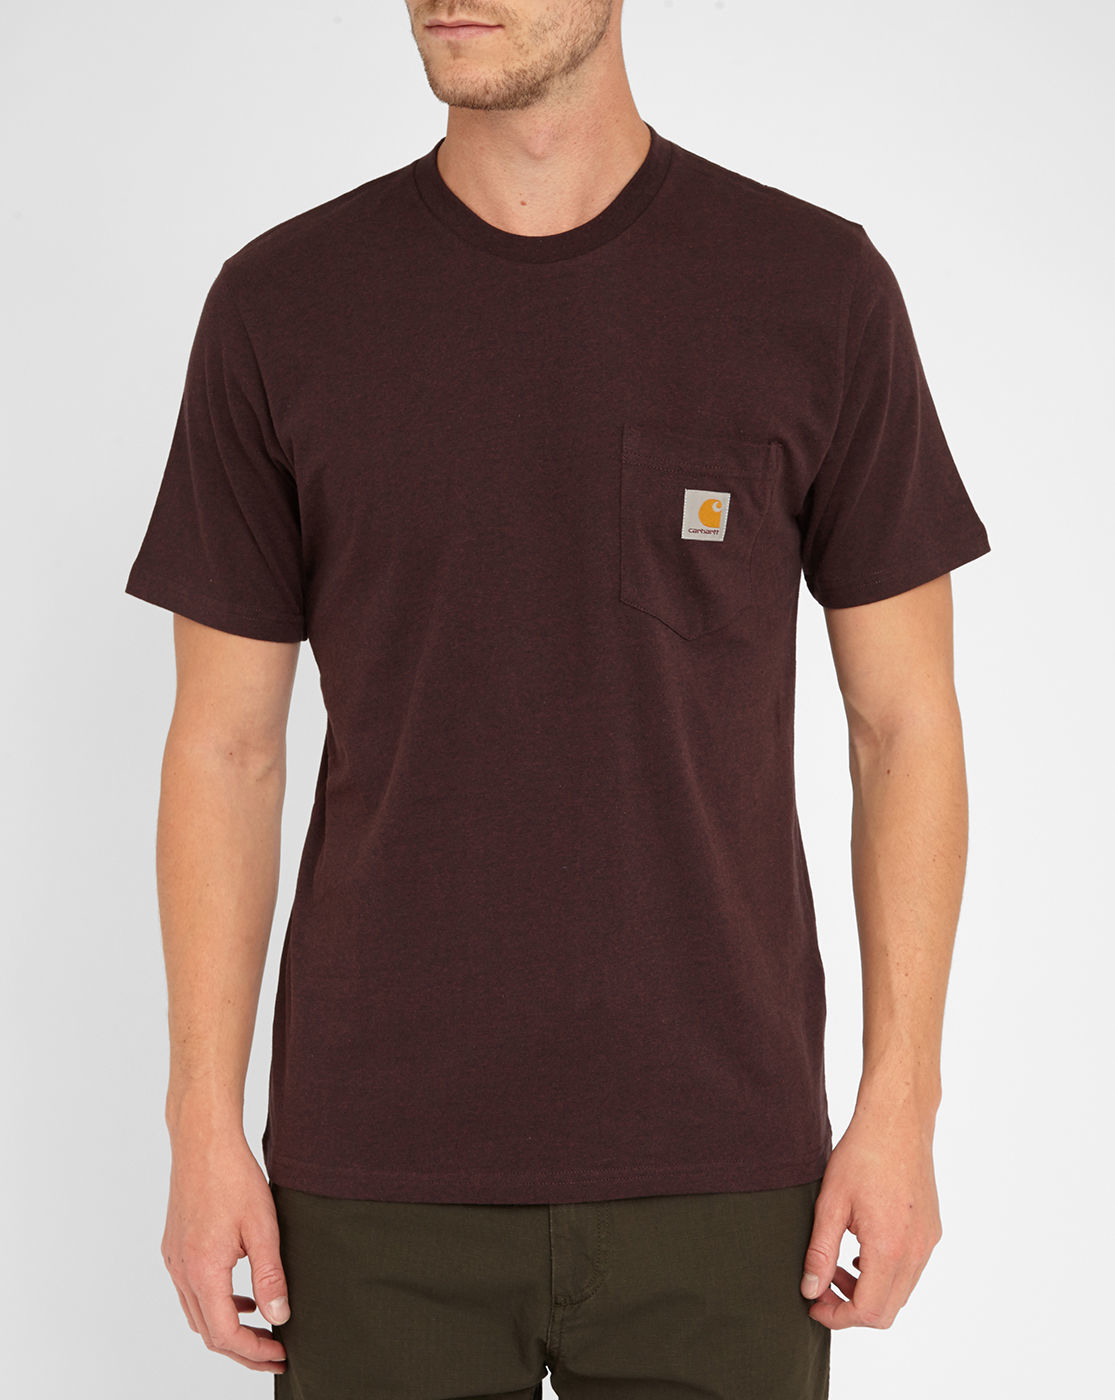 Carhartt burgundy round neck s s pocket t shirt in red for for Carhartt burgundy t shirt